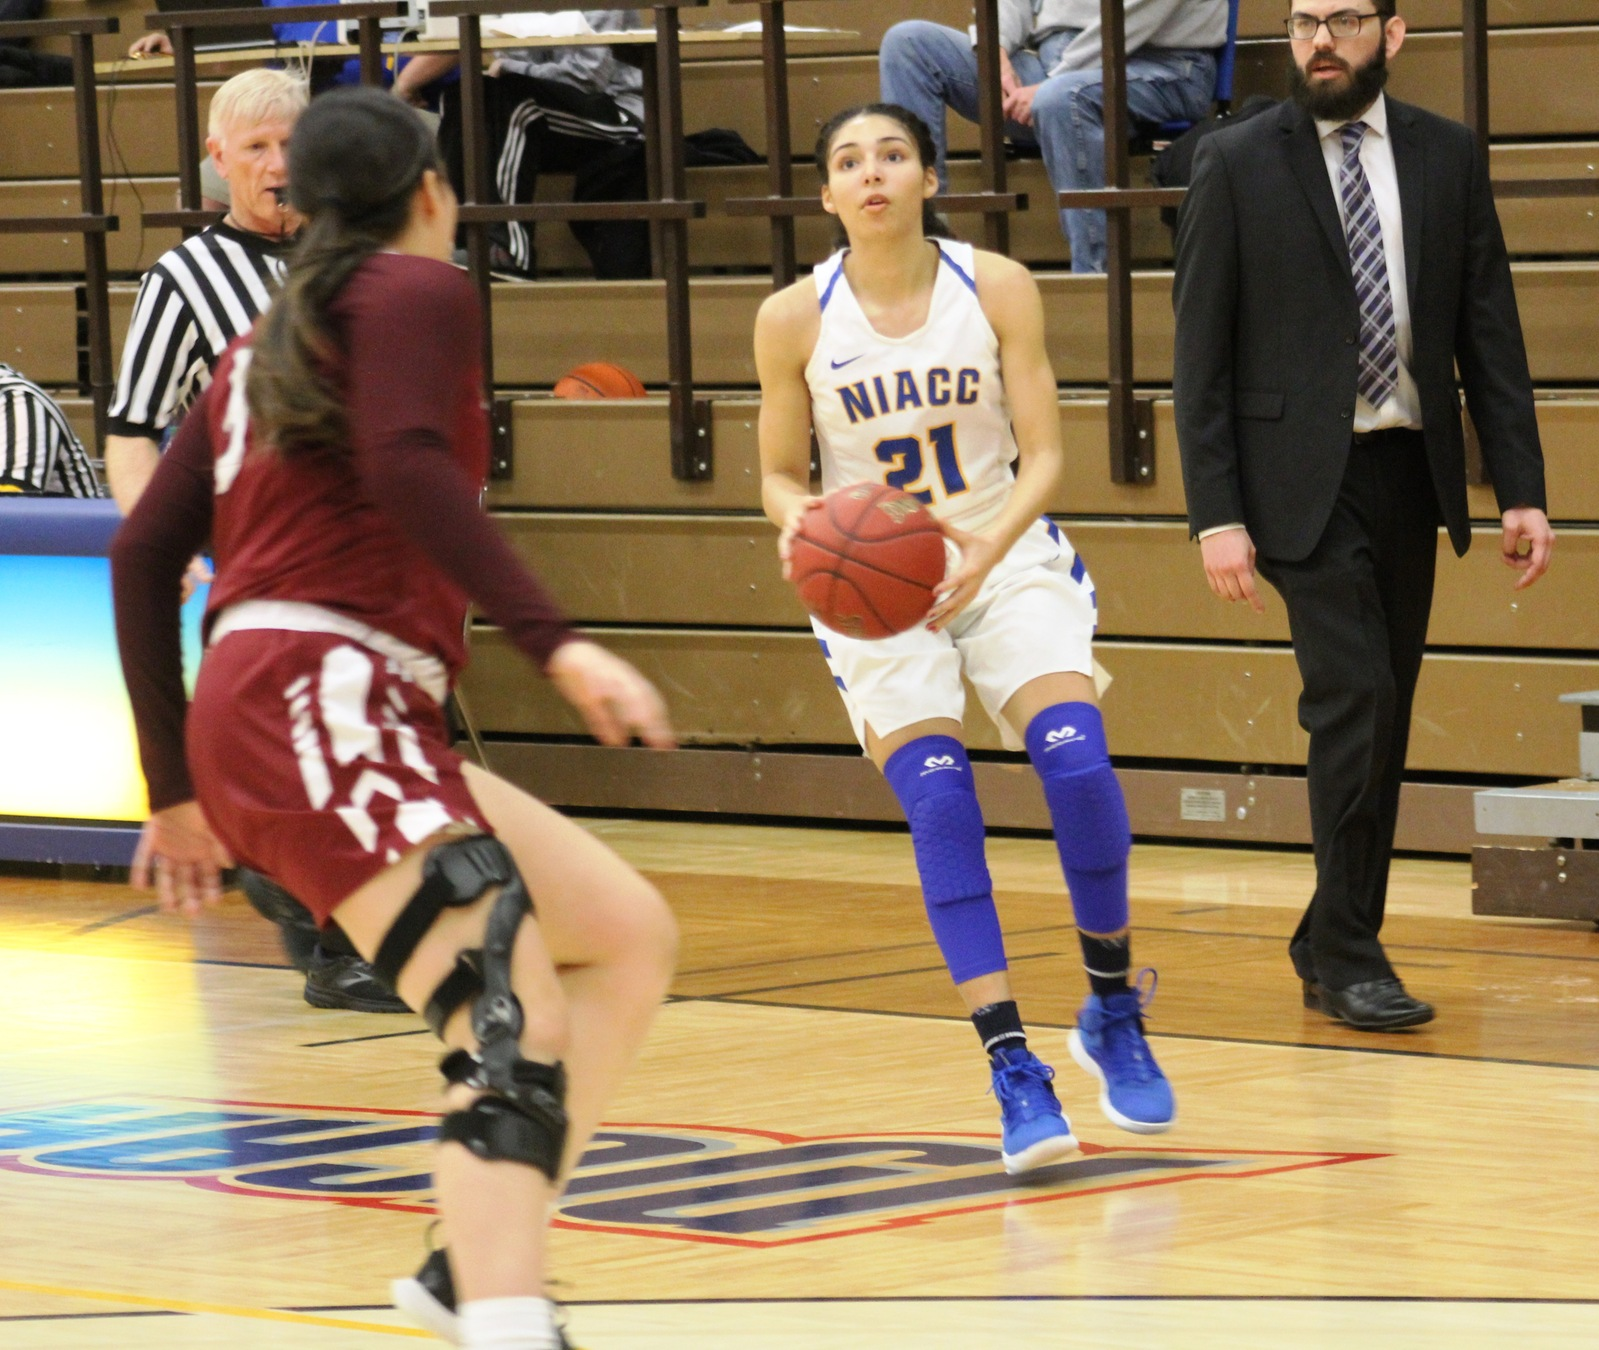 For the second time this season, NIACC's Jada Buford has been selected as the ICCAC player of the week.